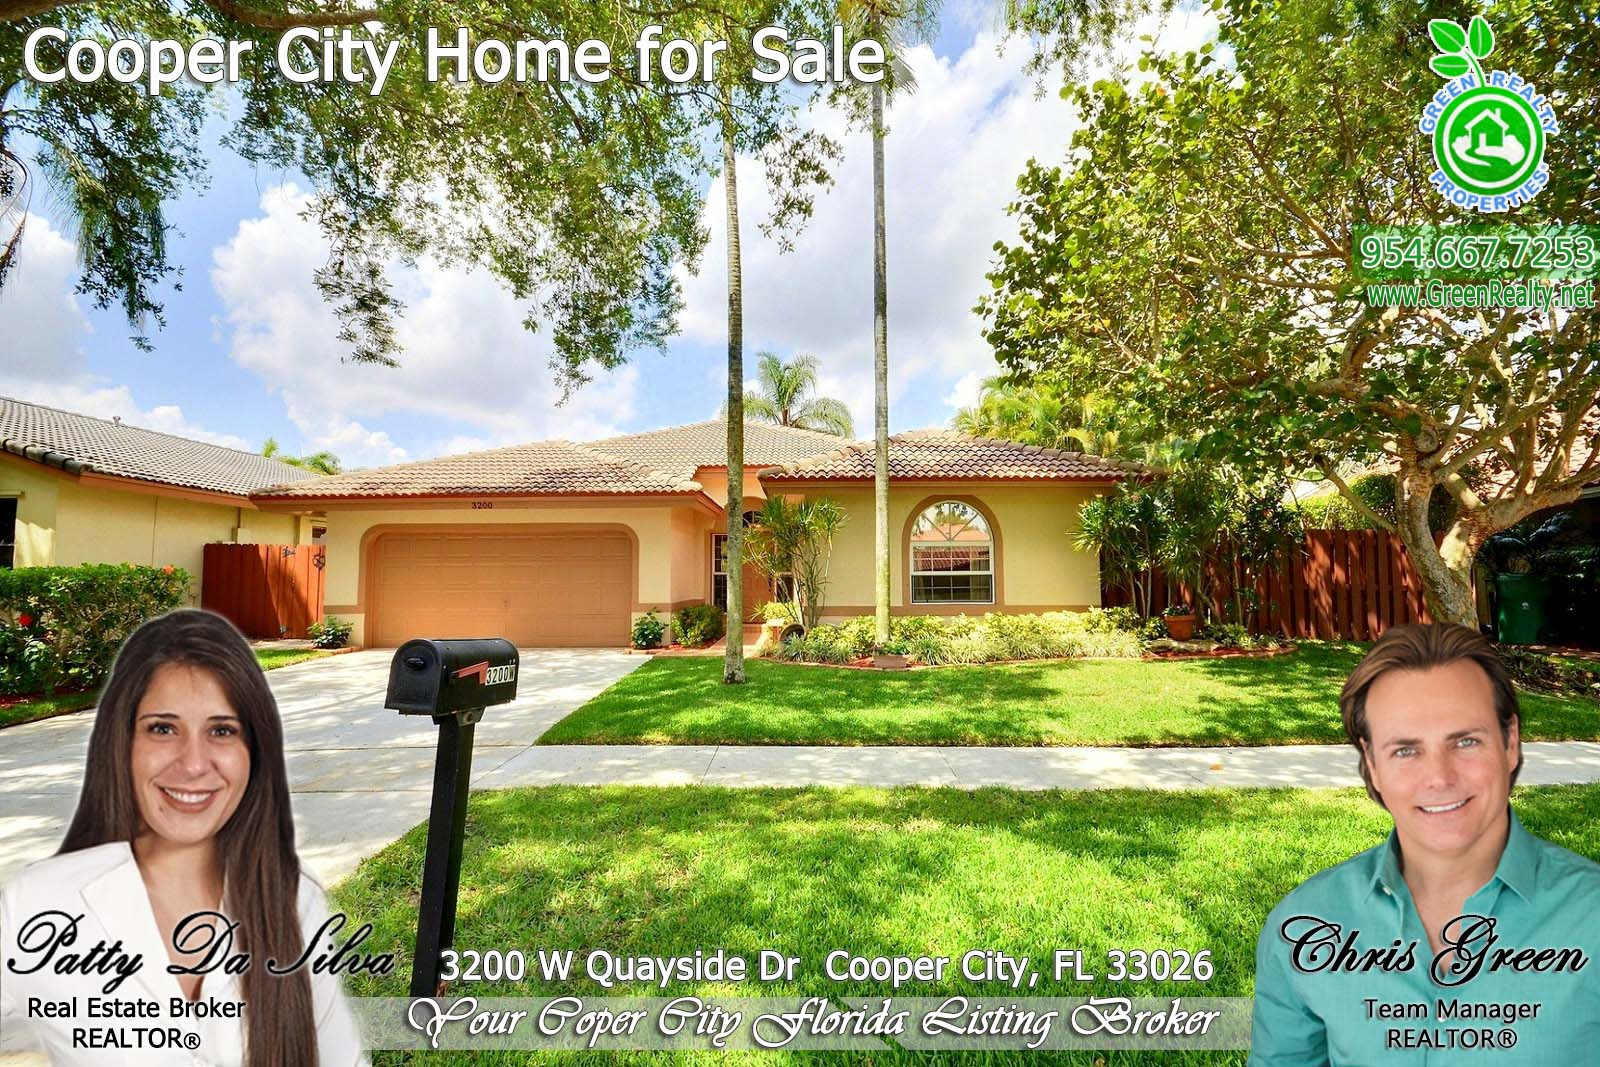 41 Cooper City Homes For Sale (5)